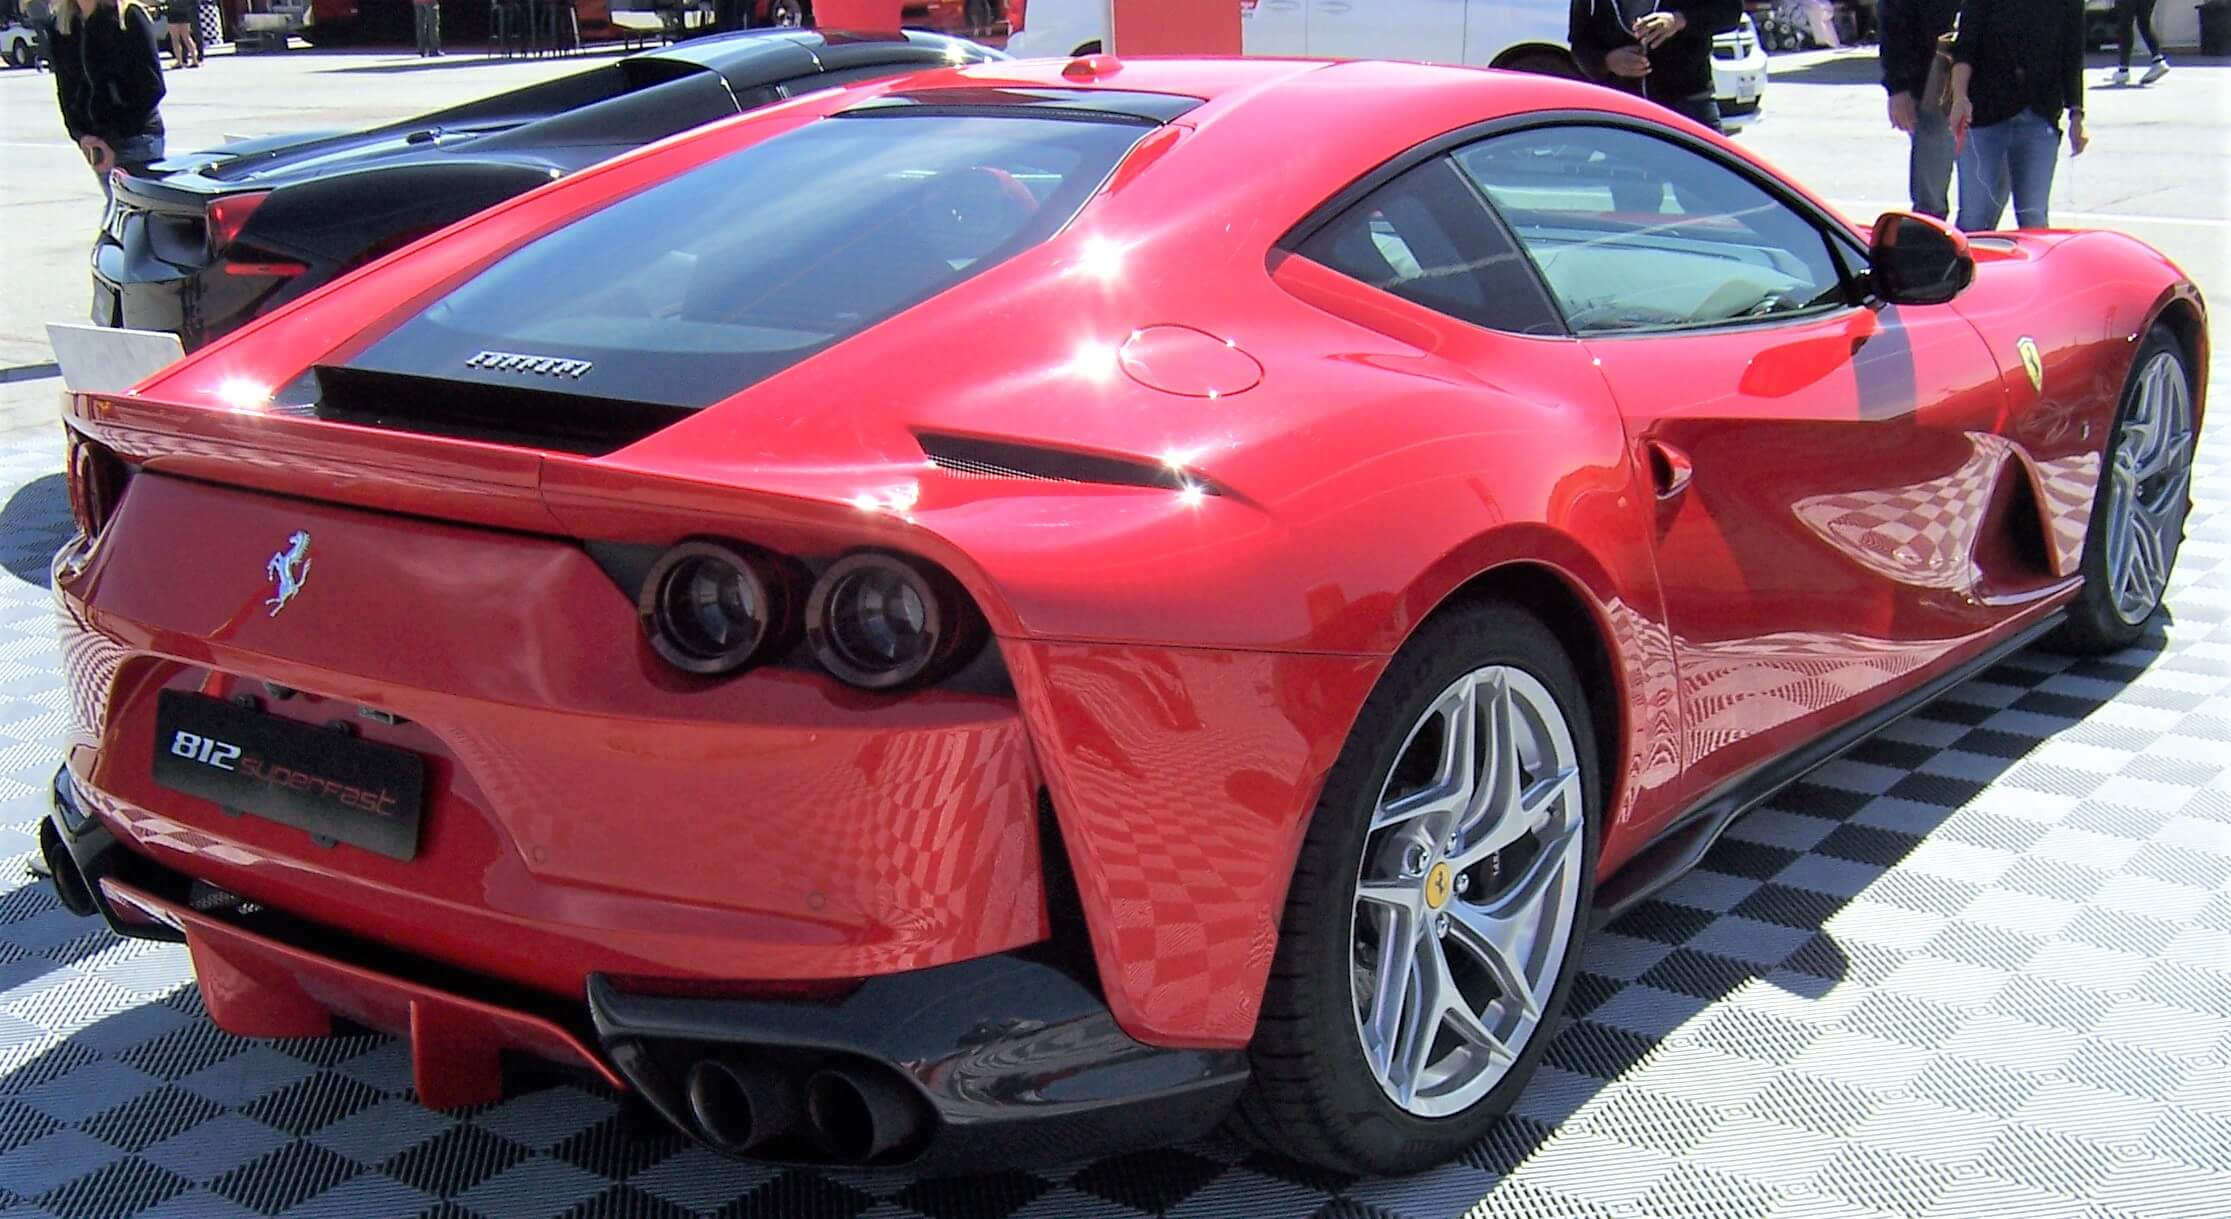 Ferrari Superfast 812 Red Rear